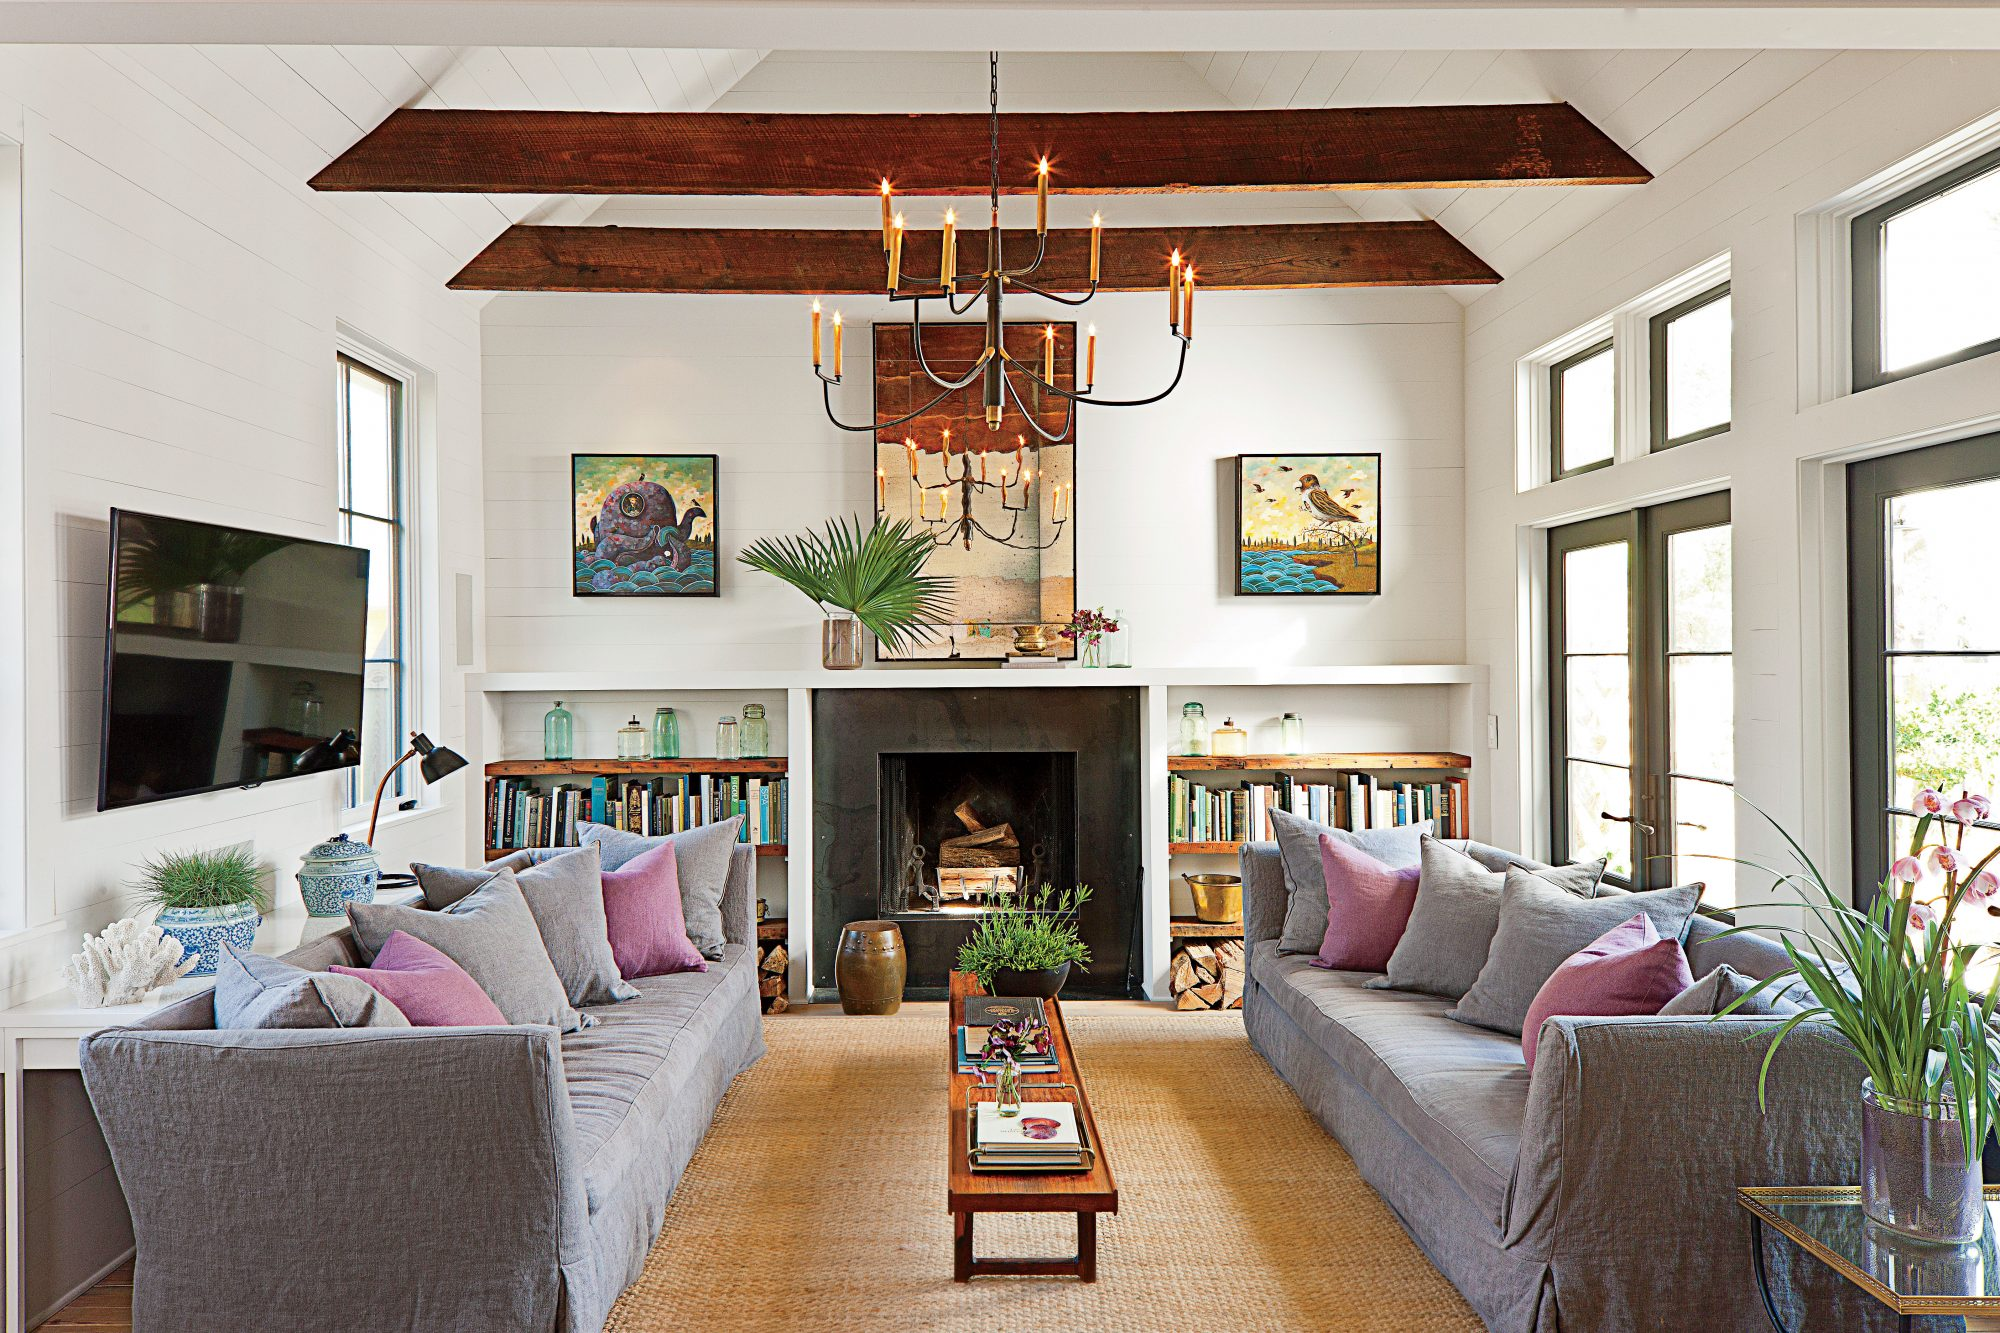 Family Room Design | What They Did